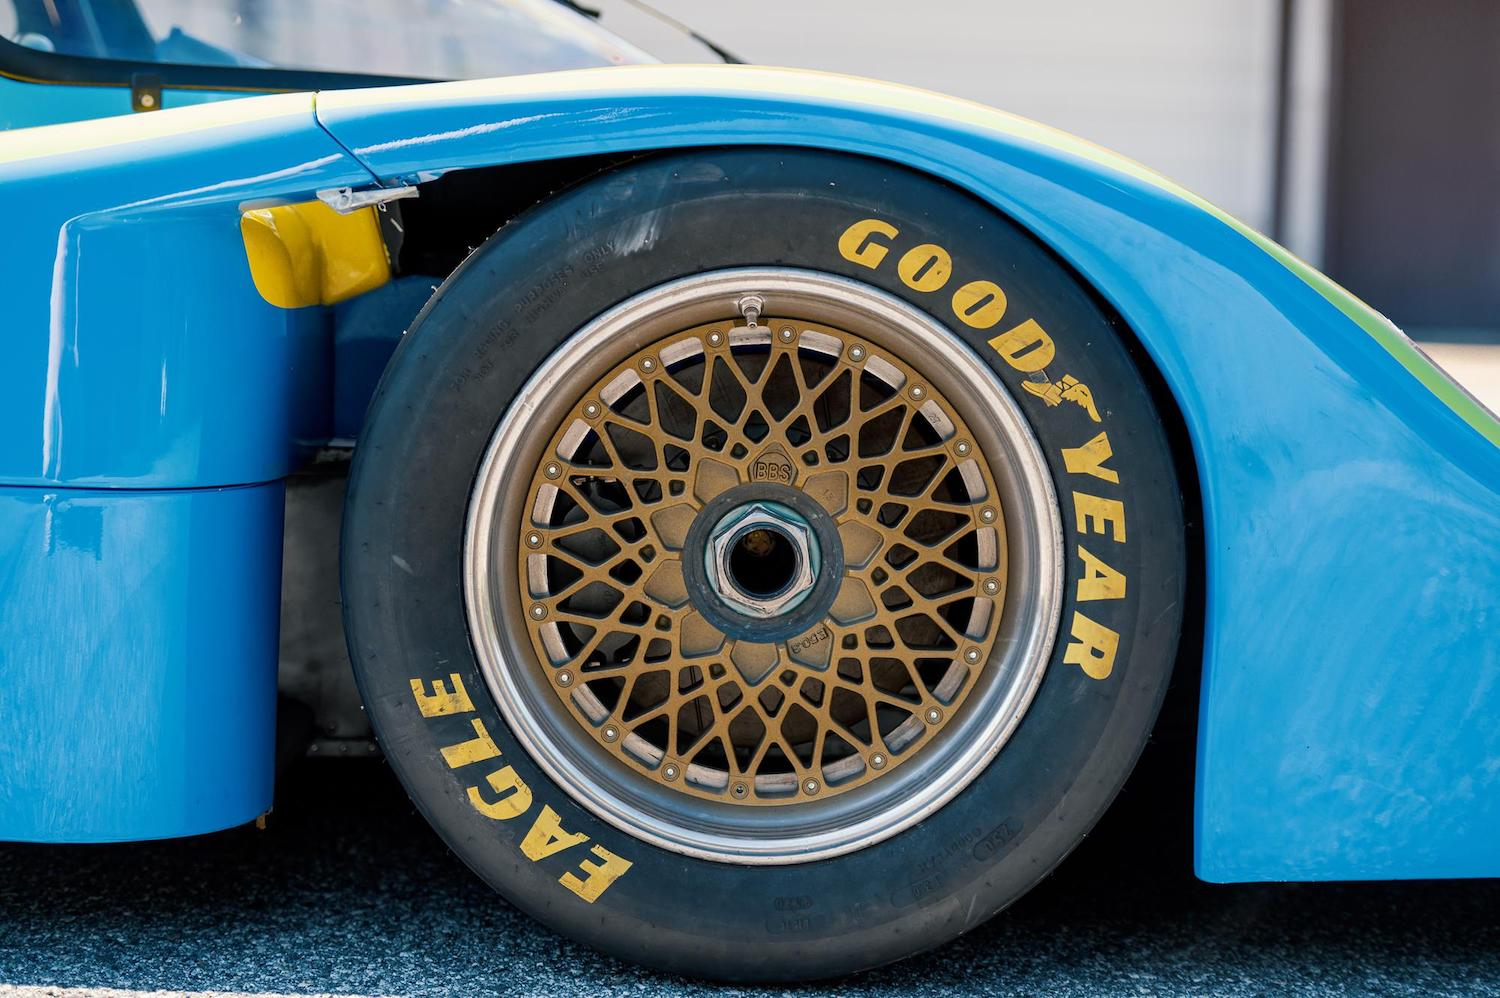 1983 Grid S2 Group C Prototype wheel